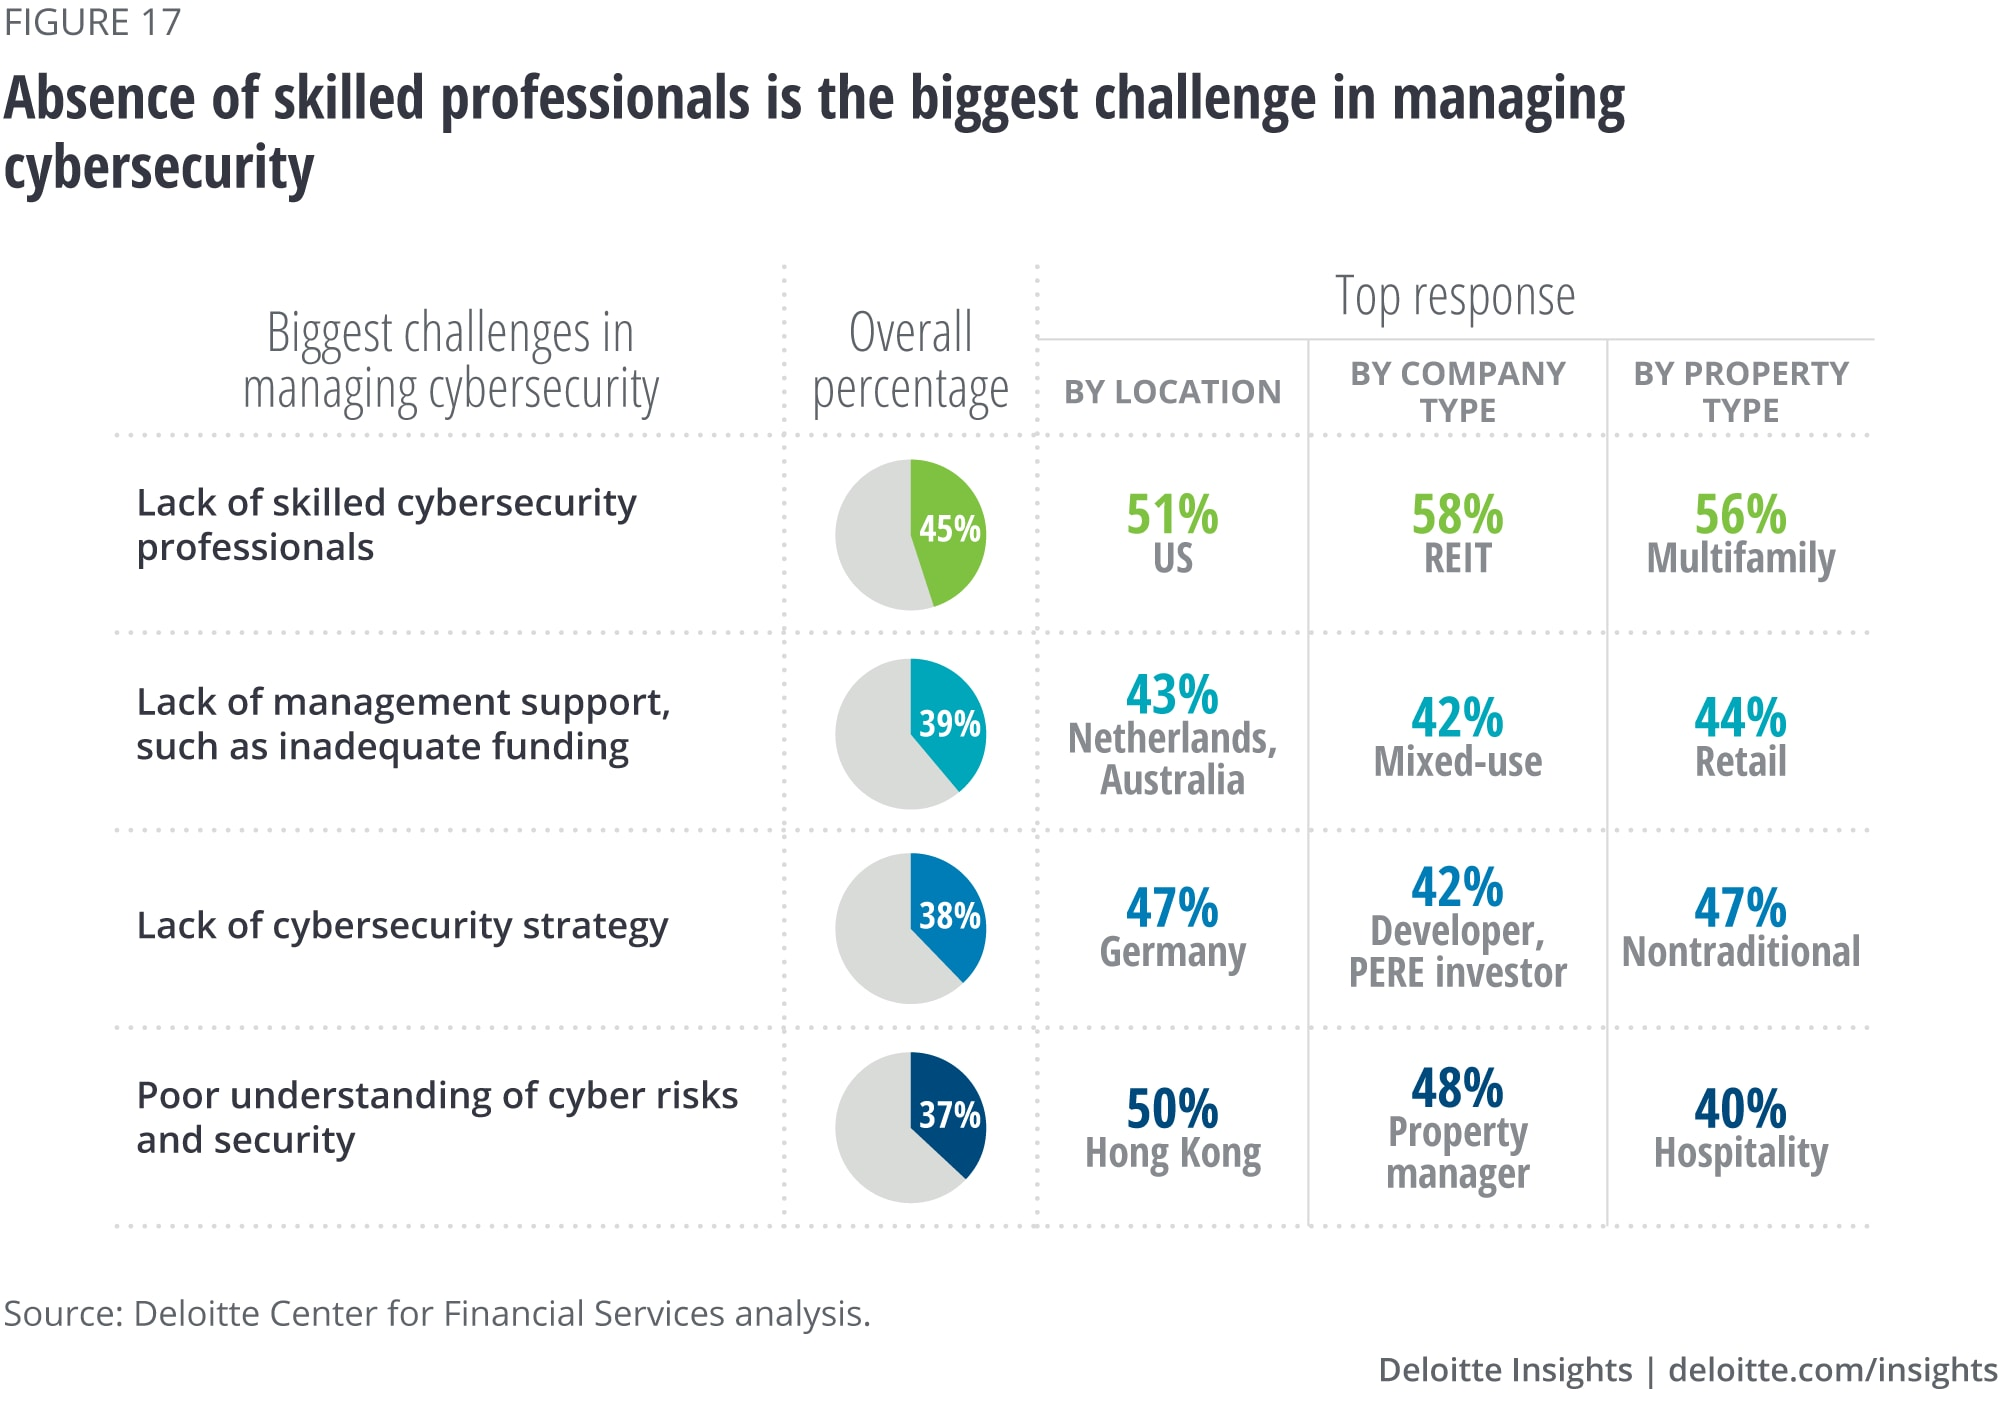 Absence of skilled professionals is the biggest challenge in managing cybersecurity